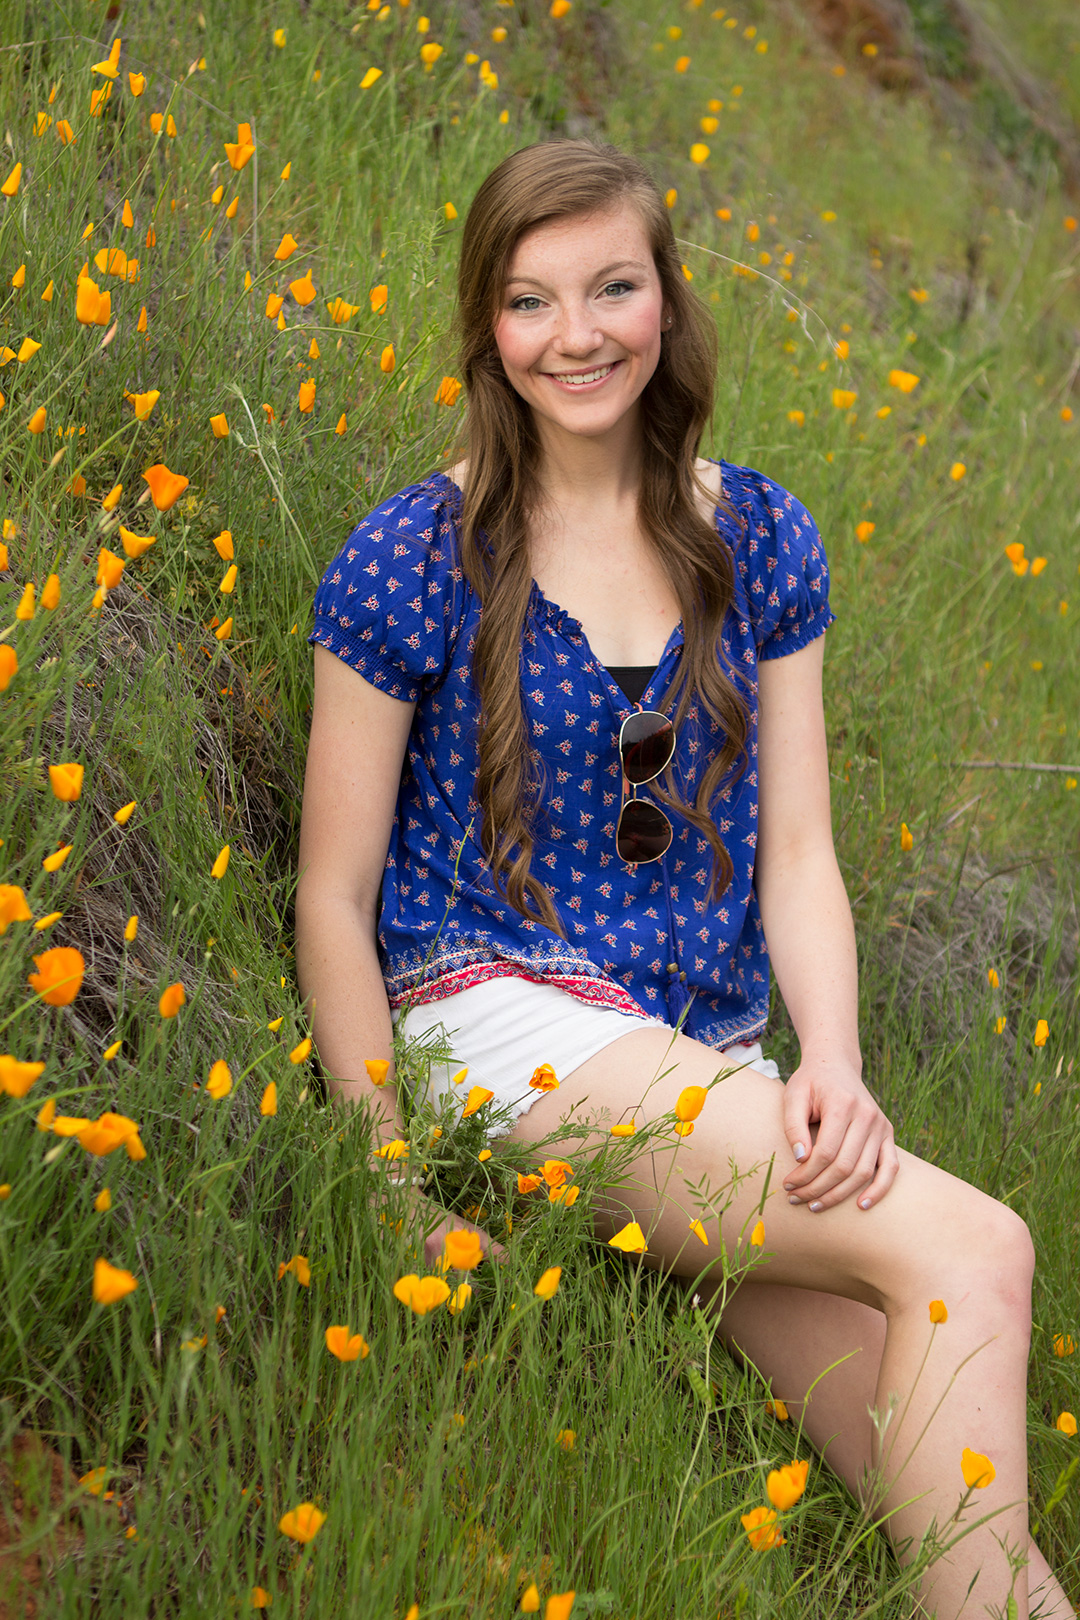 Farrell-Photography-Andie-Shelton-IMG_4834